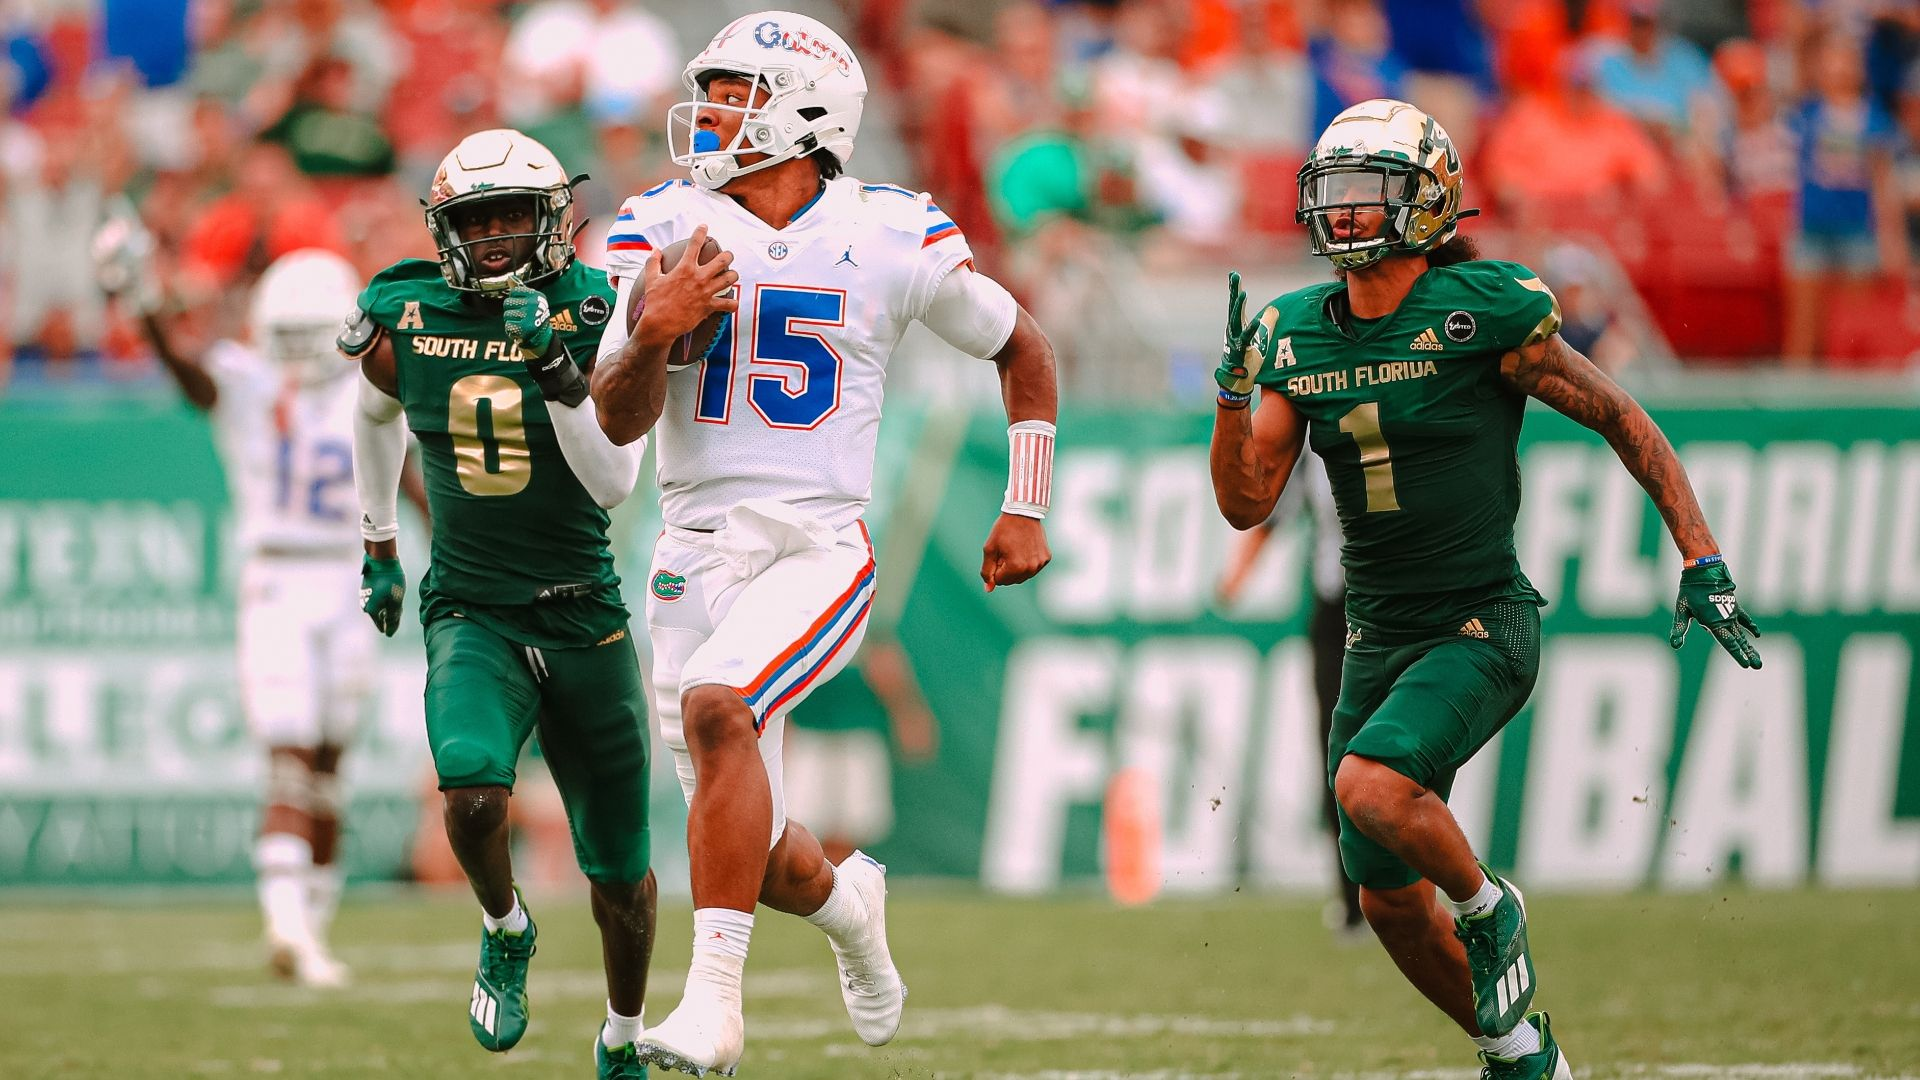 Richardson's superb performance leads UF in rout of USF